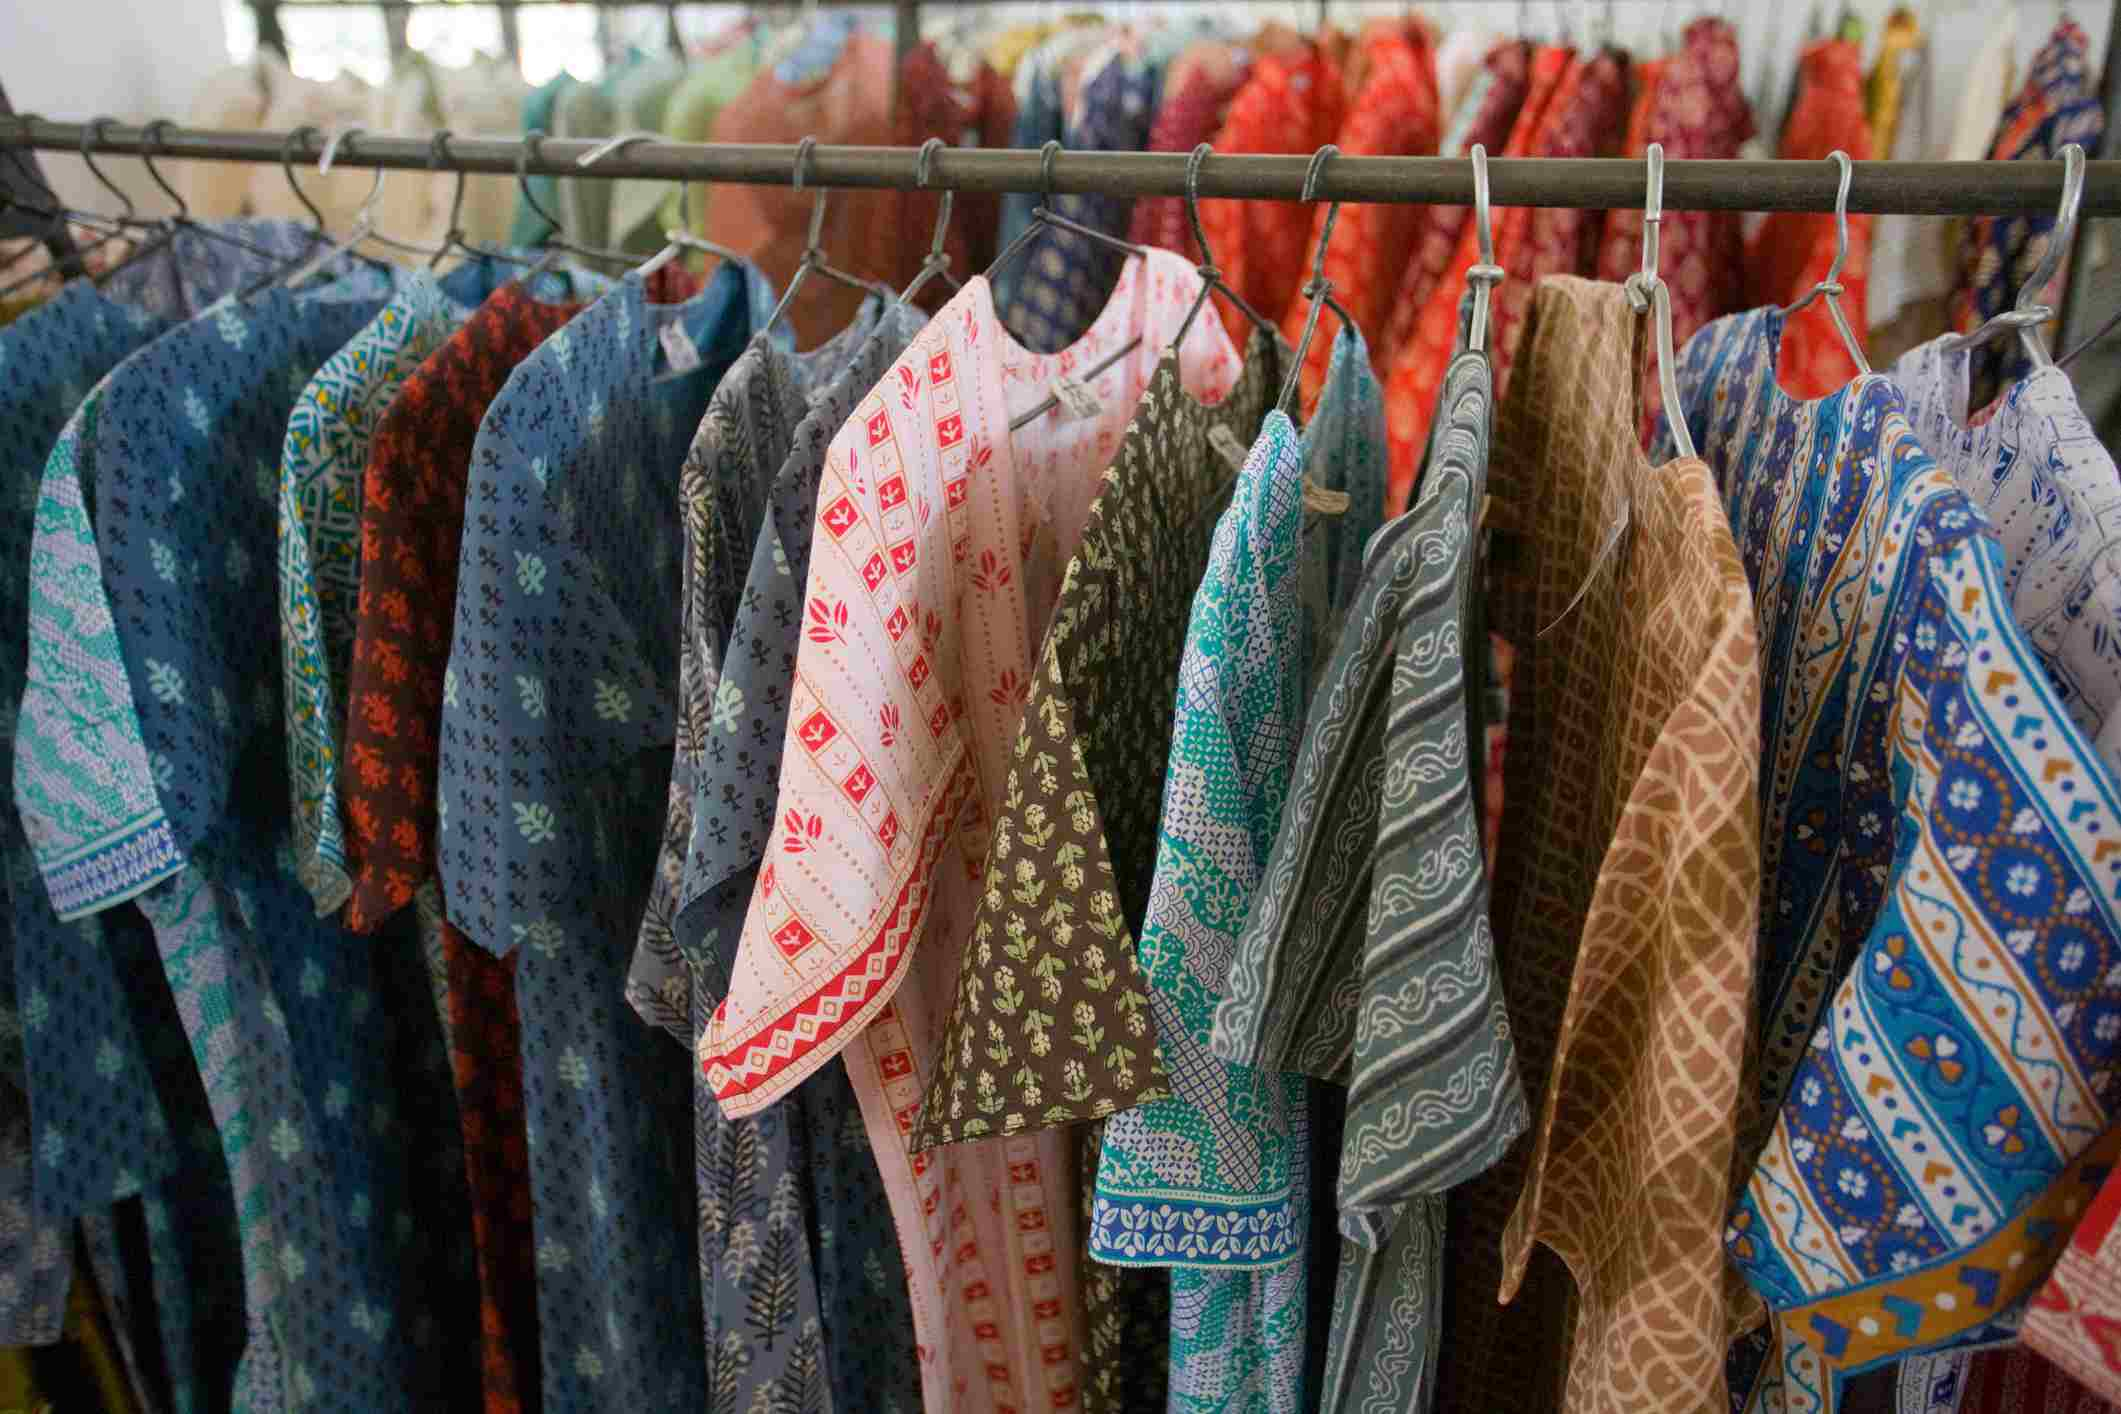 Clothing for sale in the showroom at the Barefoot College